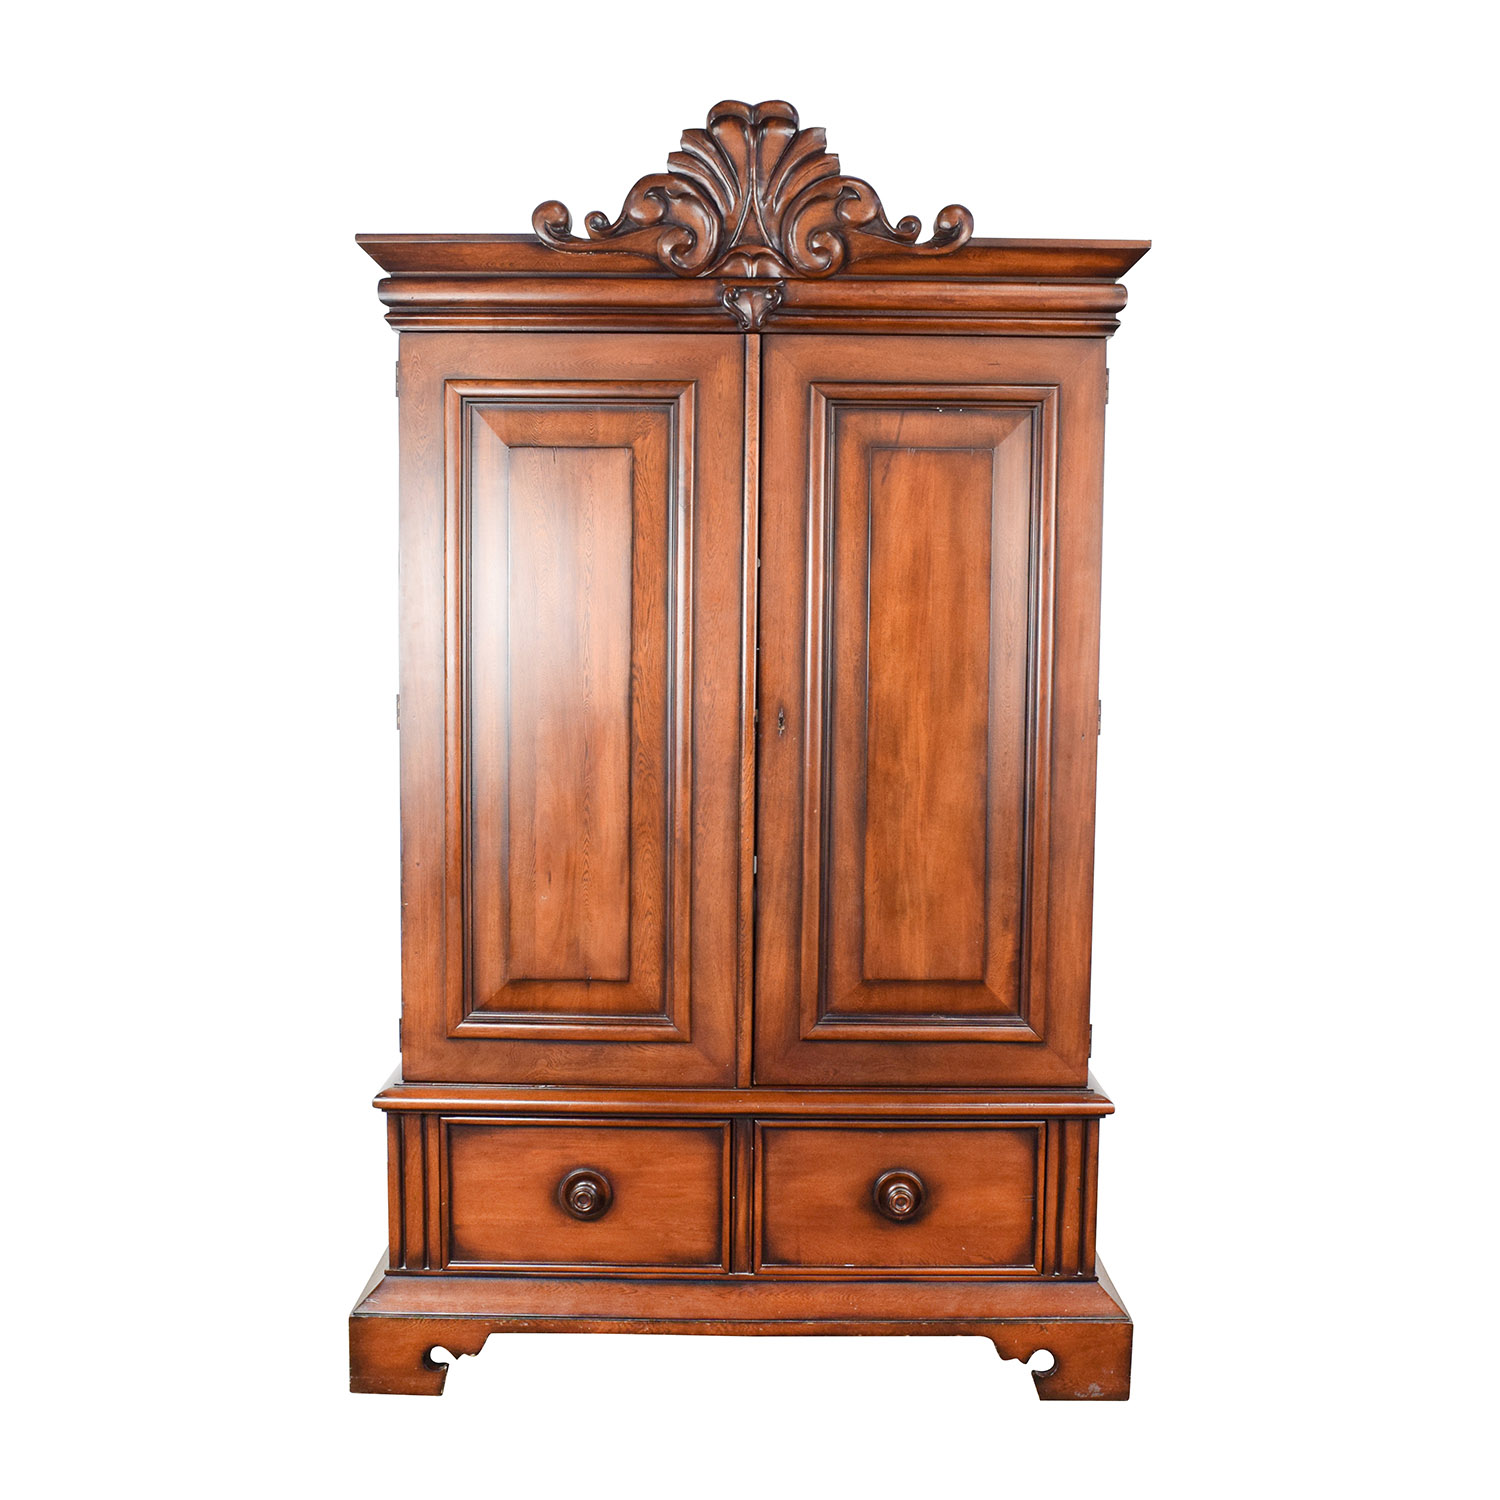 90 off ralph lauren ralph lauren mahogany armoire storage. Black Bedroom Furniture Sets. Home Design Ideas